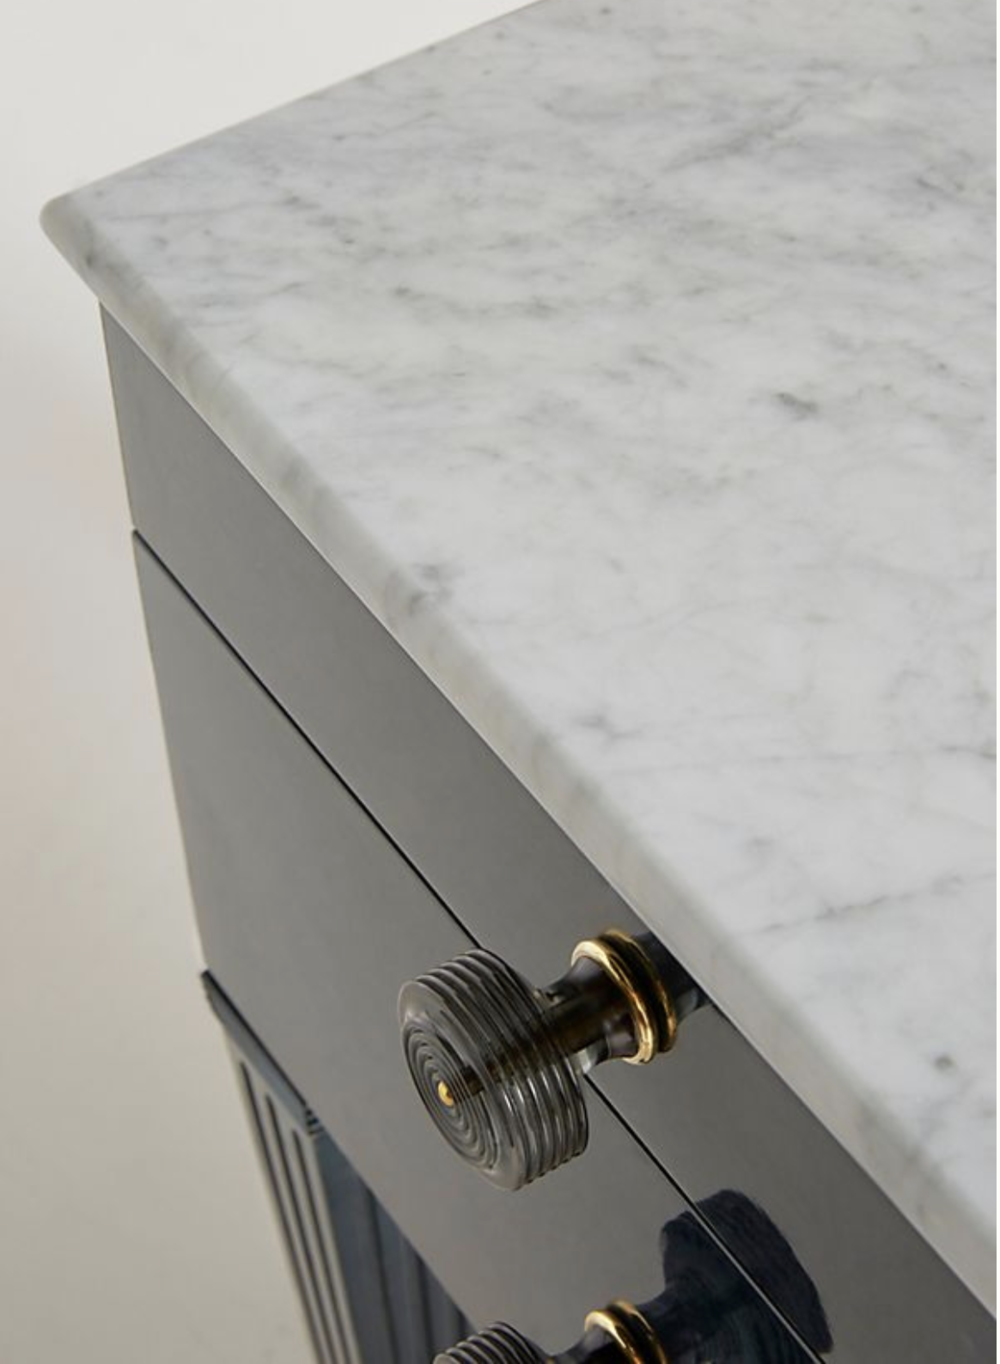 Here's a close up of the white marble desk top and the hardware. She could change out the hardware to suit her tastes...and I could have a piece of glass cut to put on top of the white marble, for now, although that would mean lots of fingerprints and constant maintenance while she's young. Decisions!